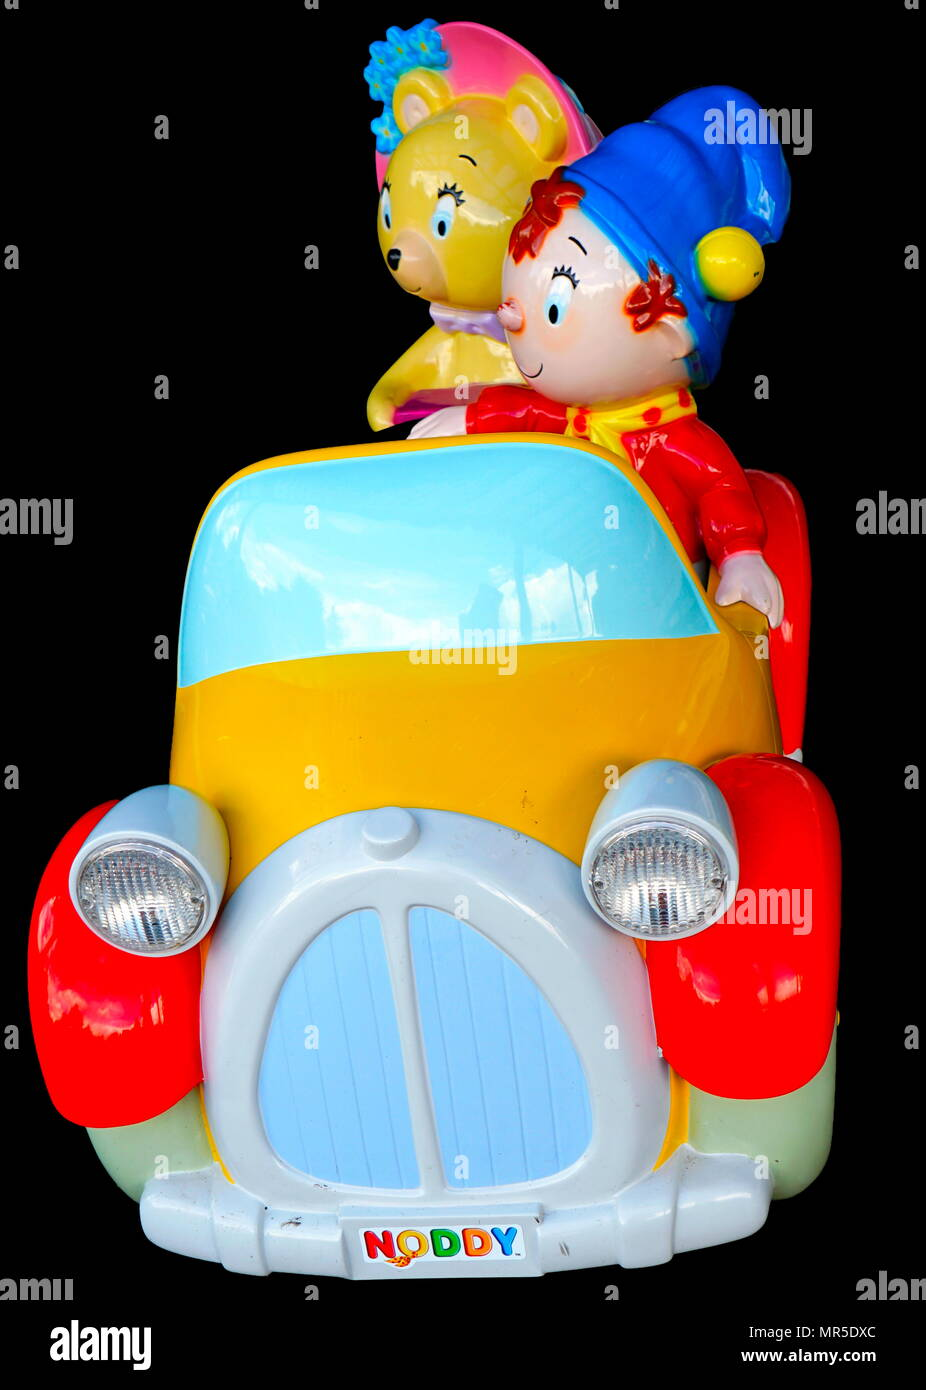 Photograph of a Noddy car. Noddy is a fictional character created by English children's author Enid Blyton, originally published between 1949 and 1963. Noddy was illustrated by the Dutch artist Eelco Martinus ten Harmsen van der Beek from 1949 until 1953. Television shows based on the character have run on British television since 1955 and continue to appear to this day - Stock Image